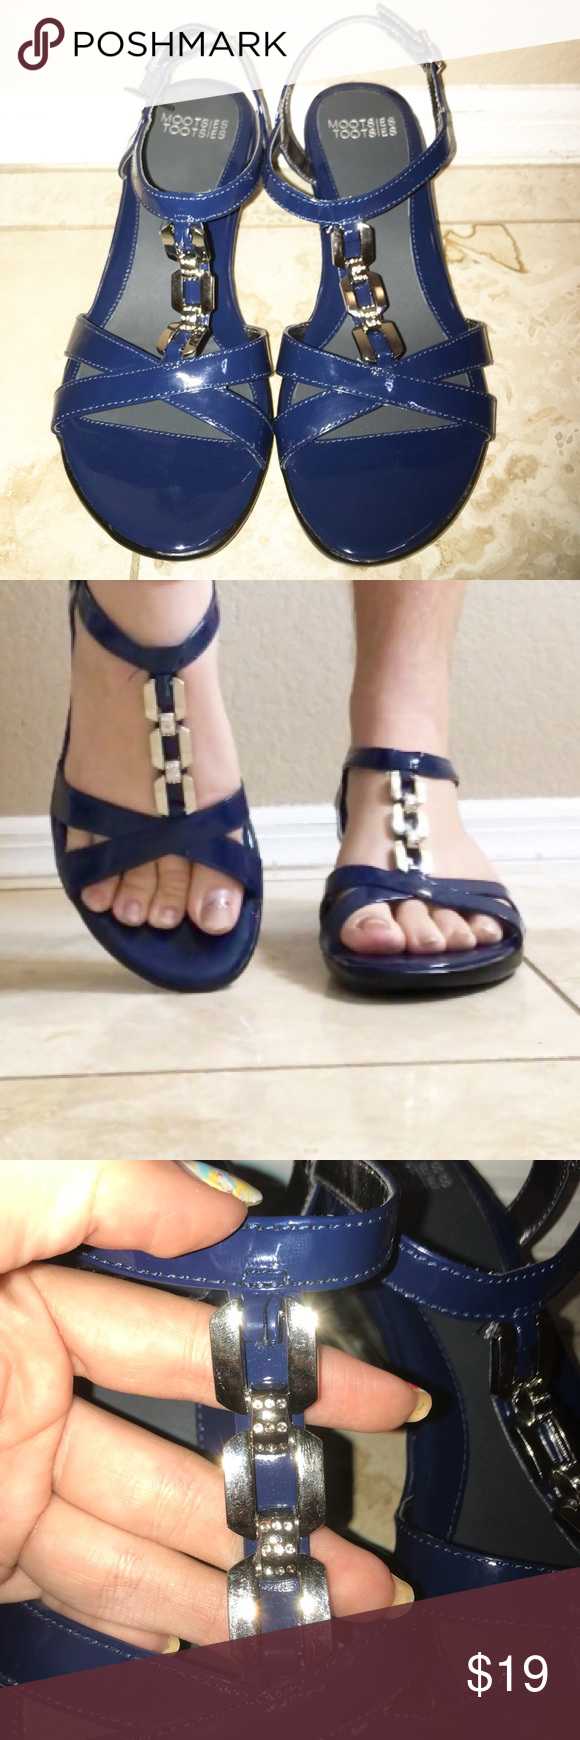 Mootsie Tootsie Blue Low Wedge Sandal Size 8 Chain This is a gorgeous and comfortable pair of low wedge heeled sandals by Mootsie Tootsie. They are in excellent condition and are in size 8. Navy blue with a chain strap. Mootsies Tootsies Shoes Sandals #lowwedgesandals